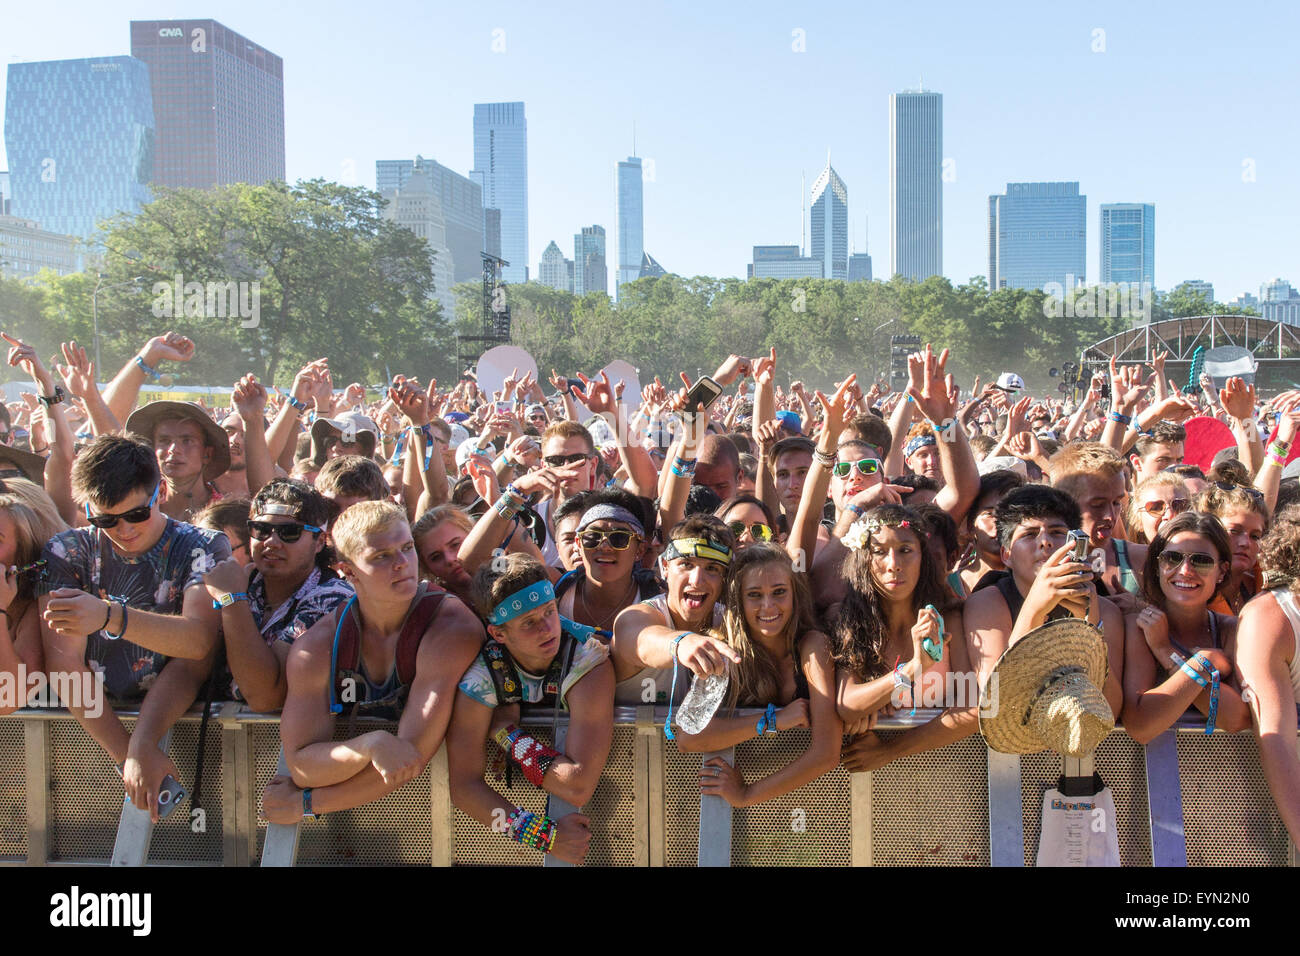 Chicago, Illinois, USA. 31st July, 2015. Fans enjoy a set by DJ Snake in Grant Park at the Lollapalooza Music Festival - Stock Image